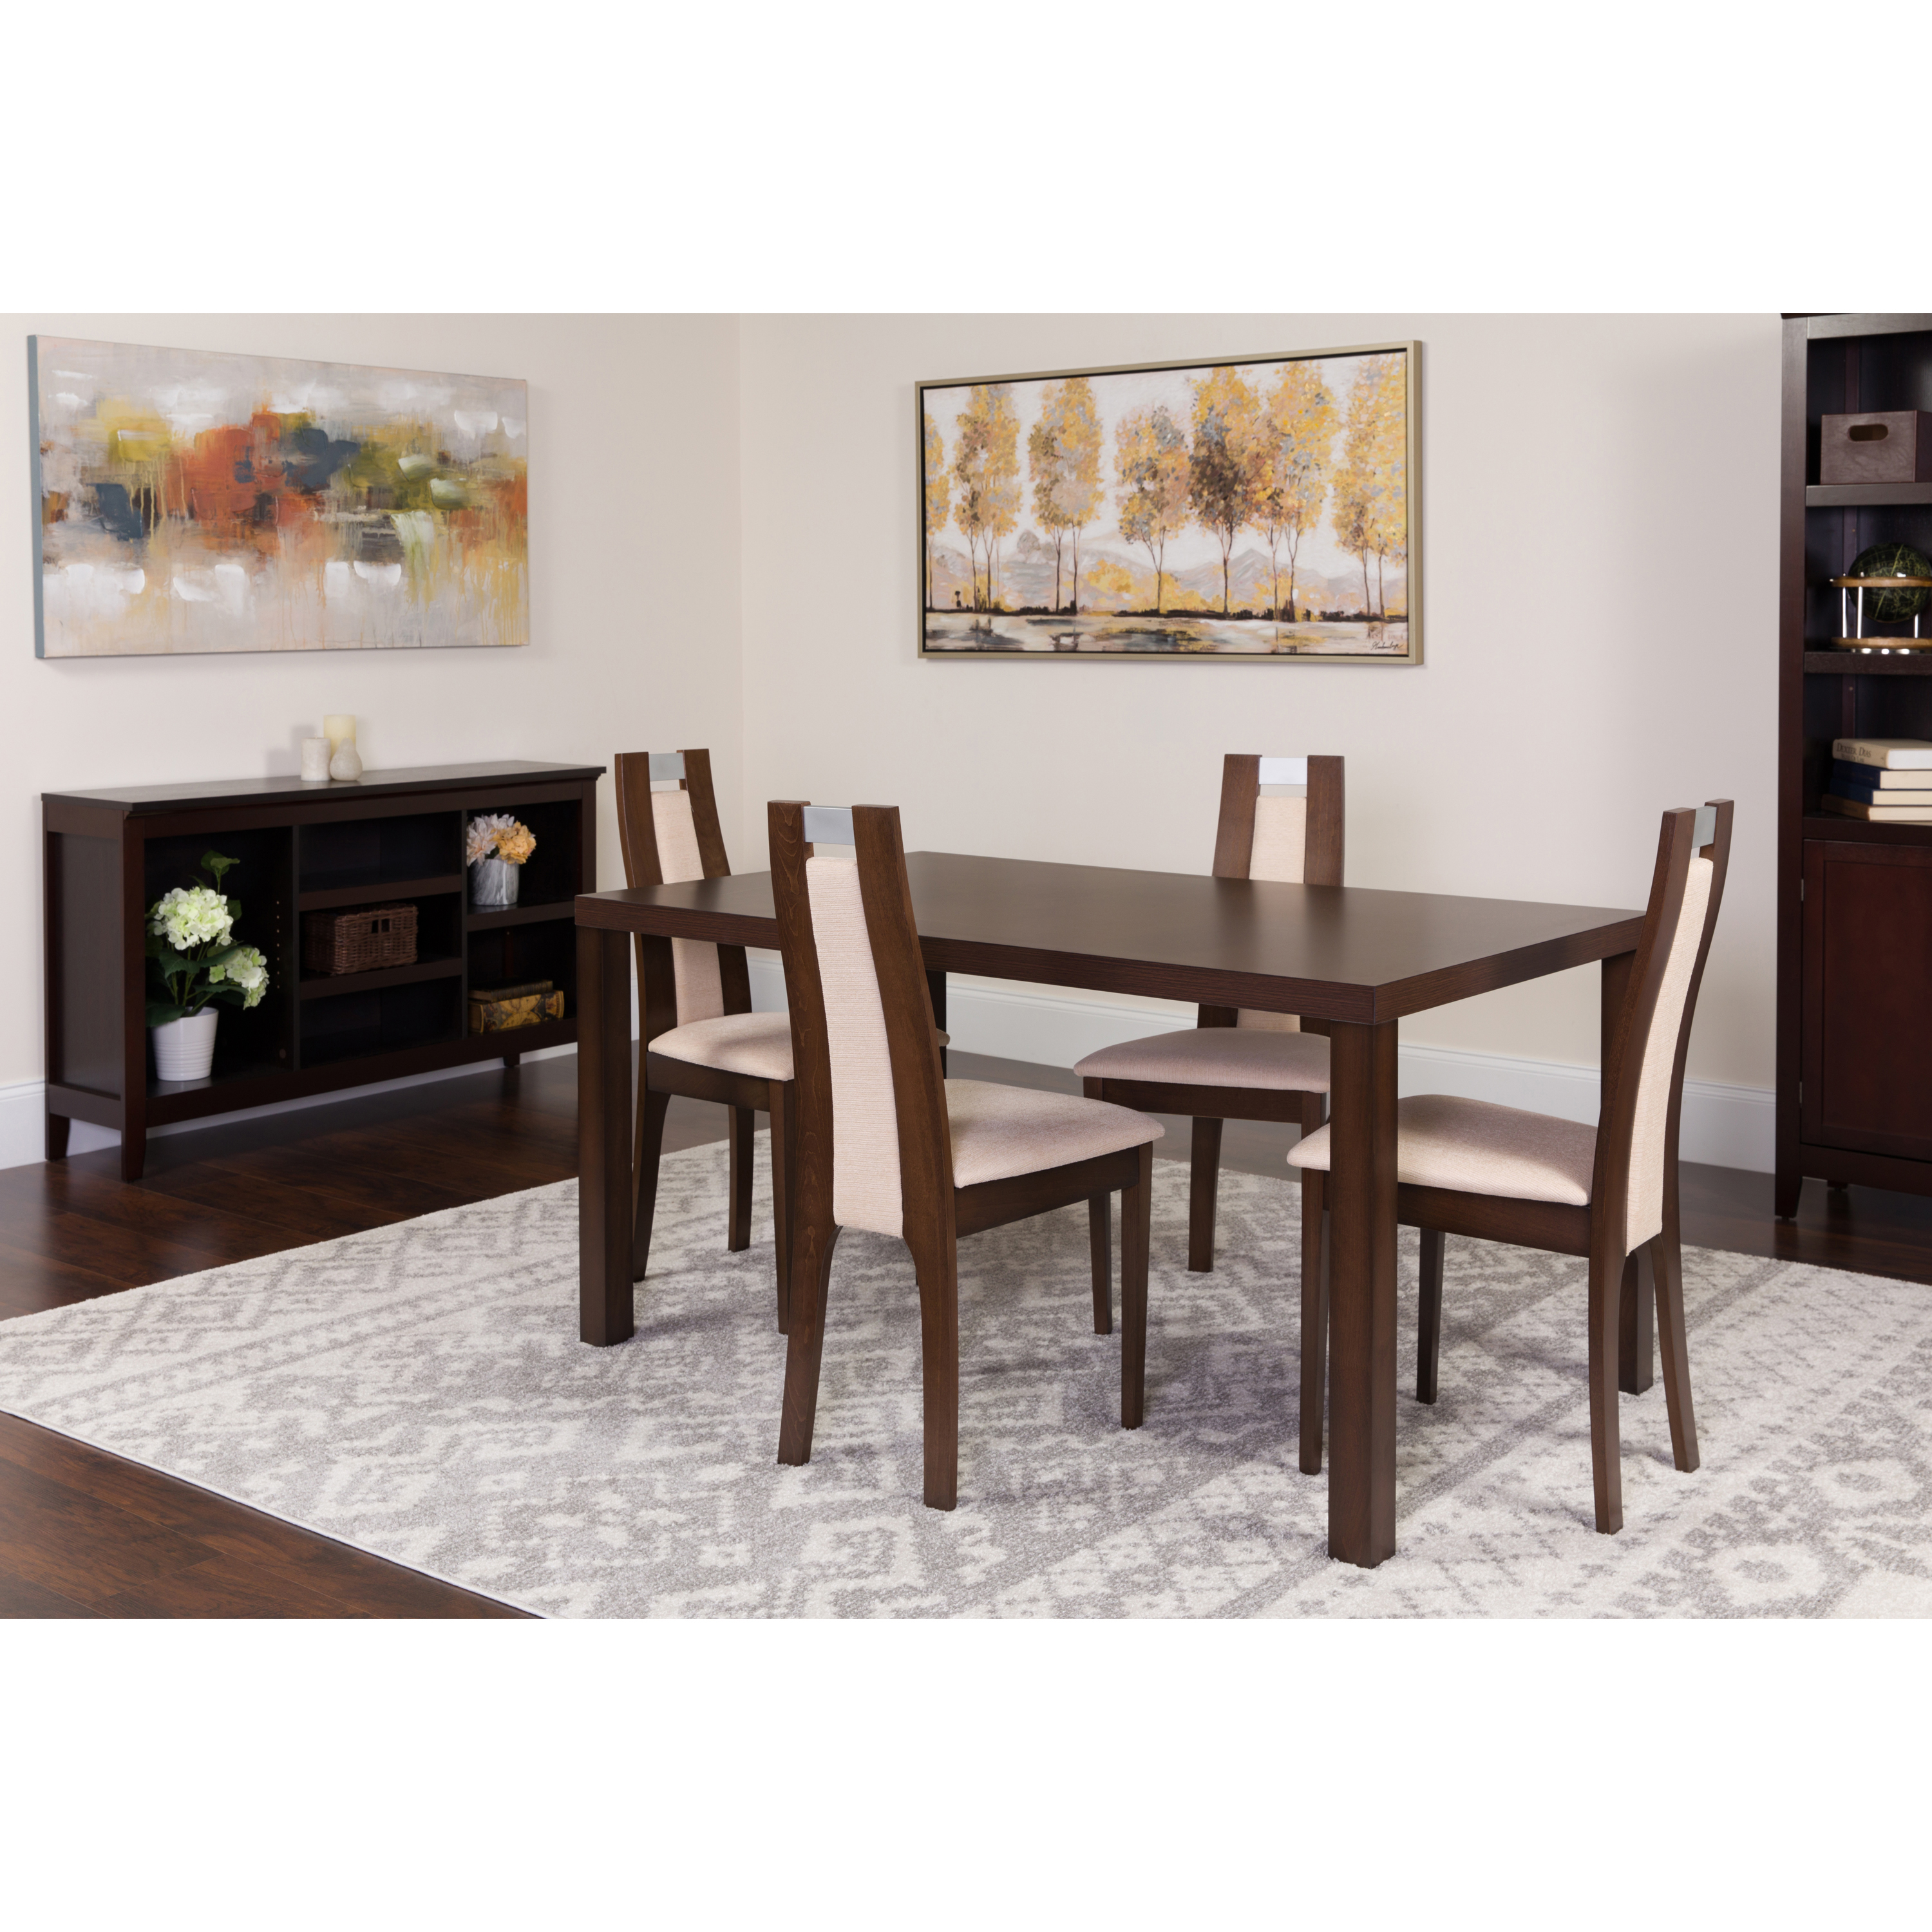 Flash furniture harlesden 5 piece espresso wood dining table set with curved slat wood dining chairs padded seats walmart com